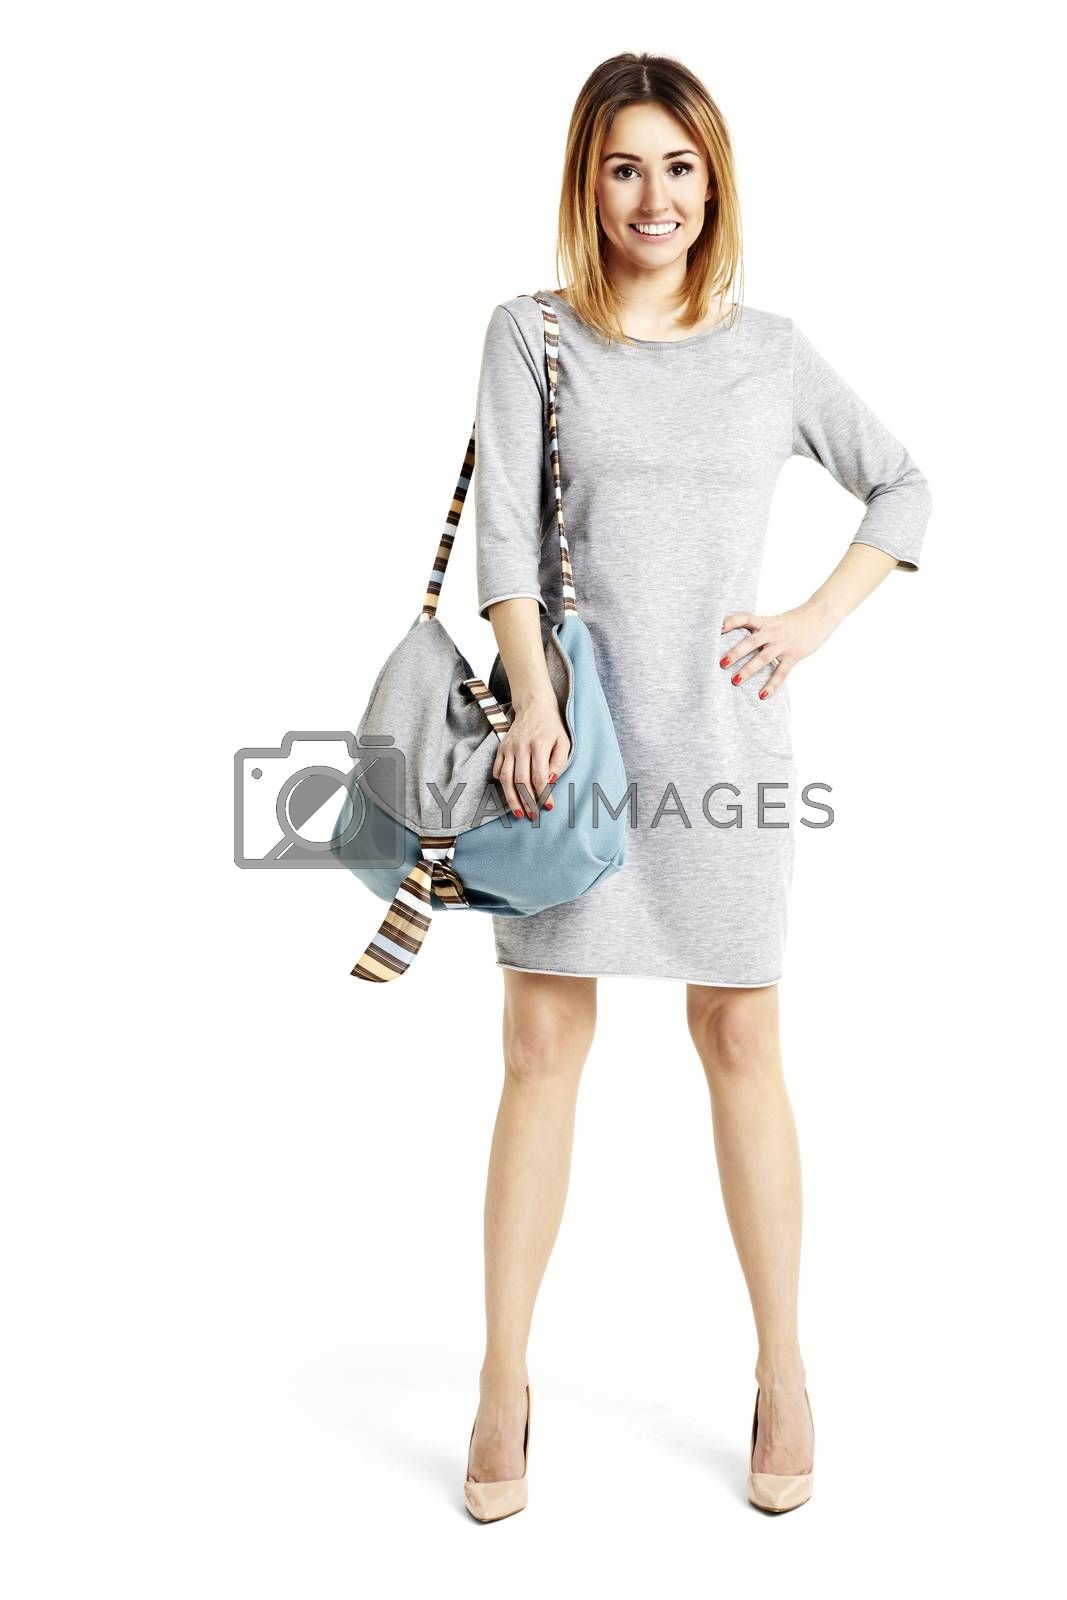 Studio shot of young woman with a bag. She hold a hand on her hip.